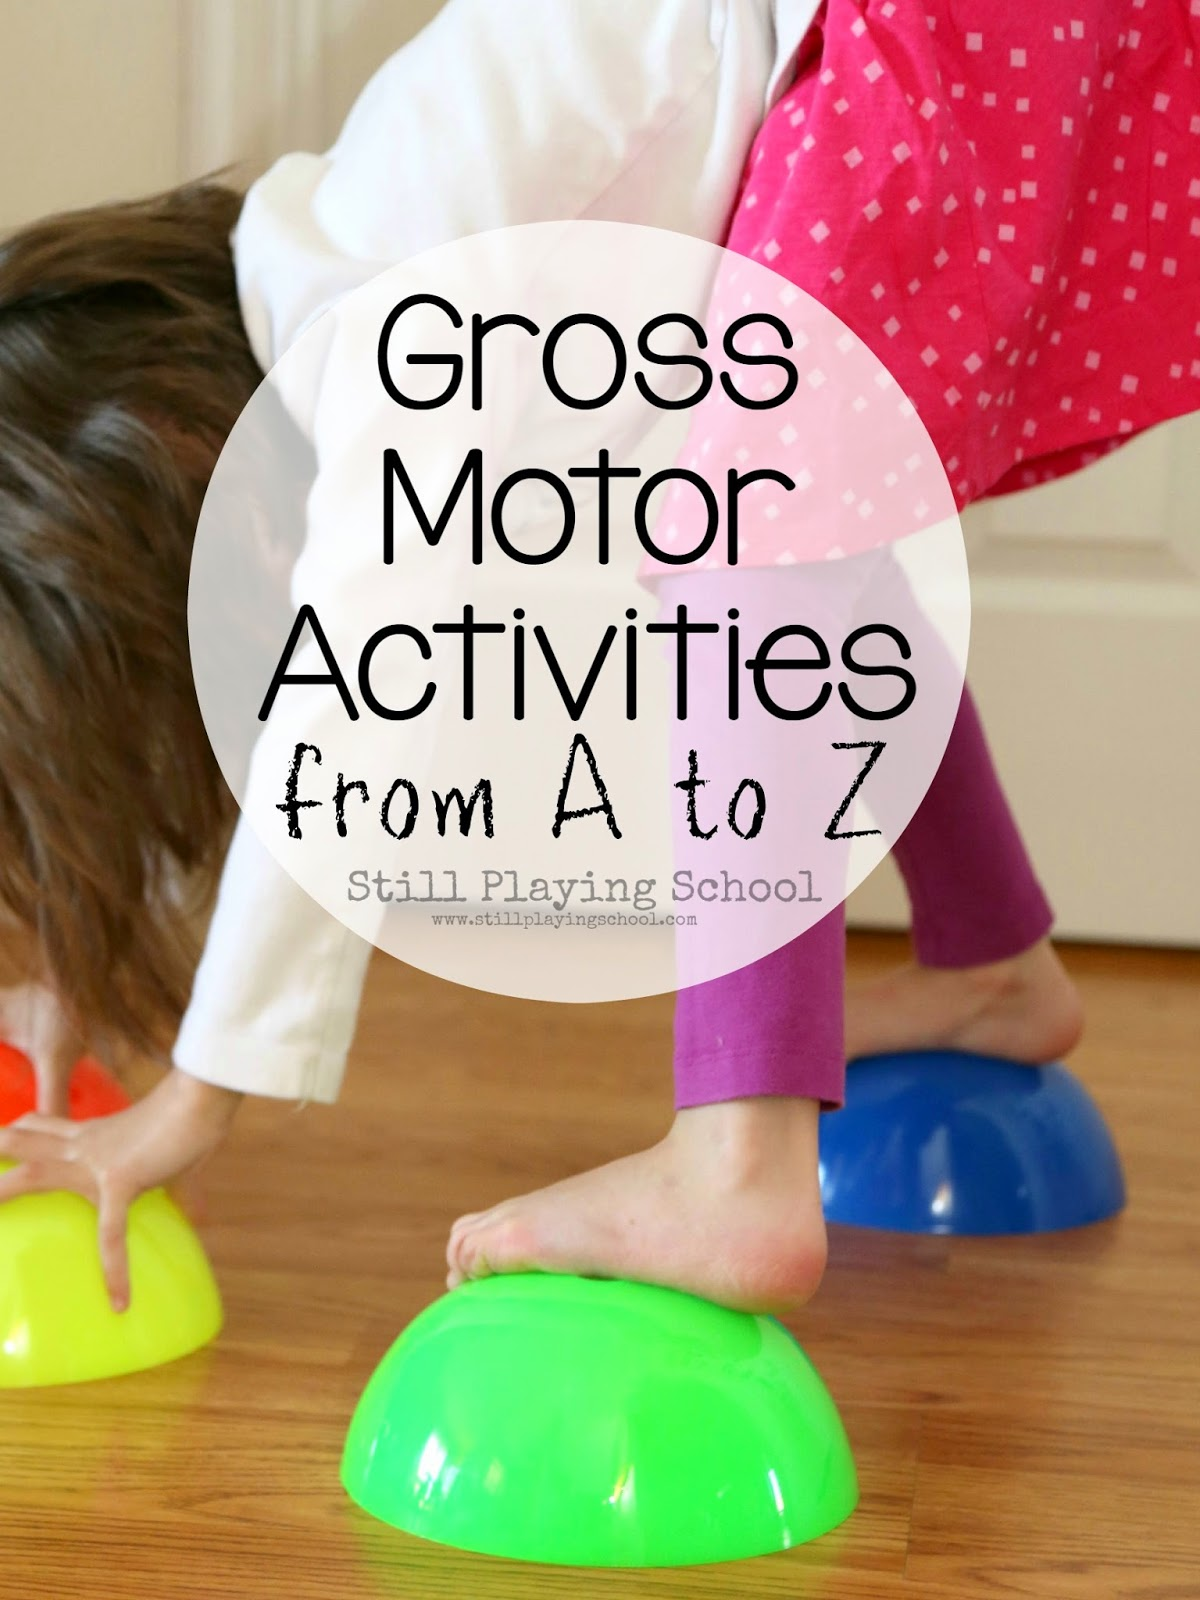 Active games for kids fun gross motor ideas from a to z for Indoor gross motor activities